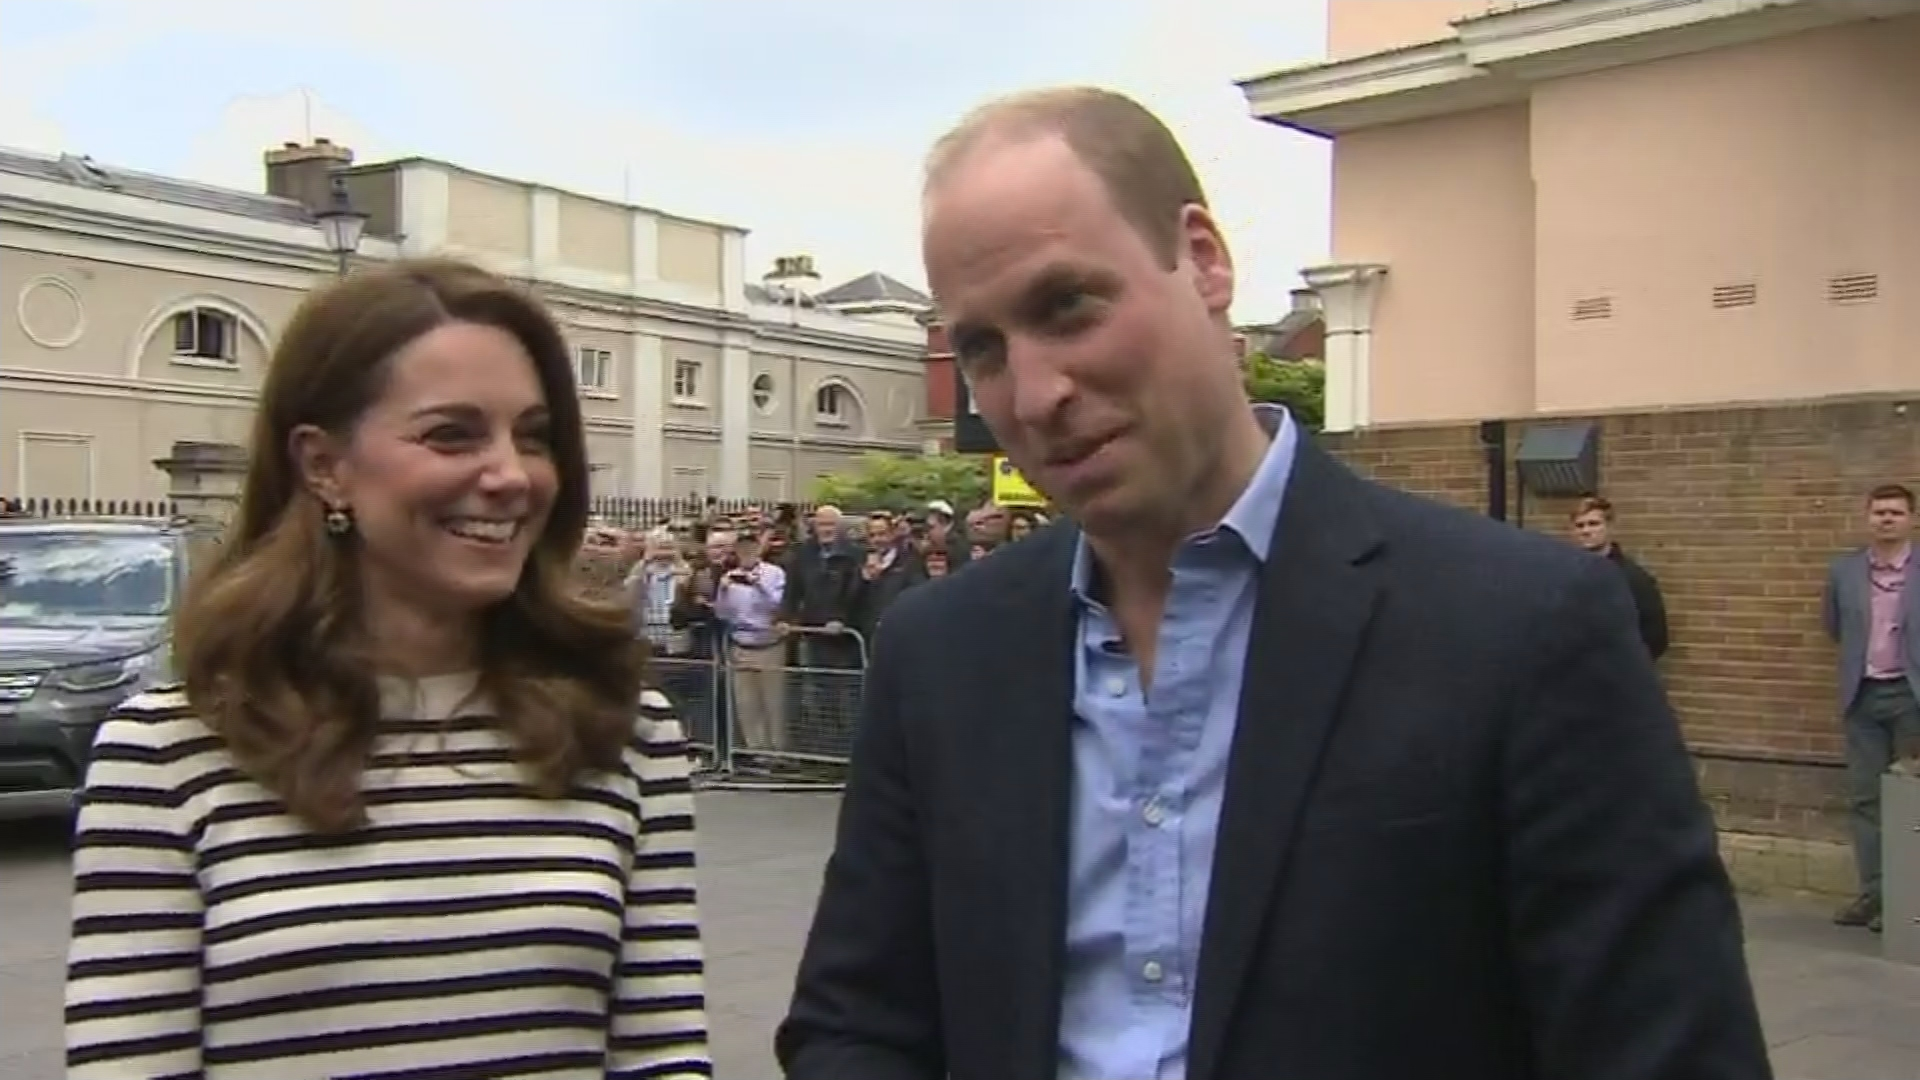 Prince William's Royal Baby Message Gets Very Real About Sleep Deprivation